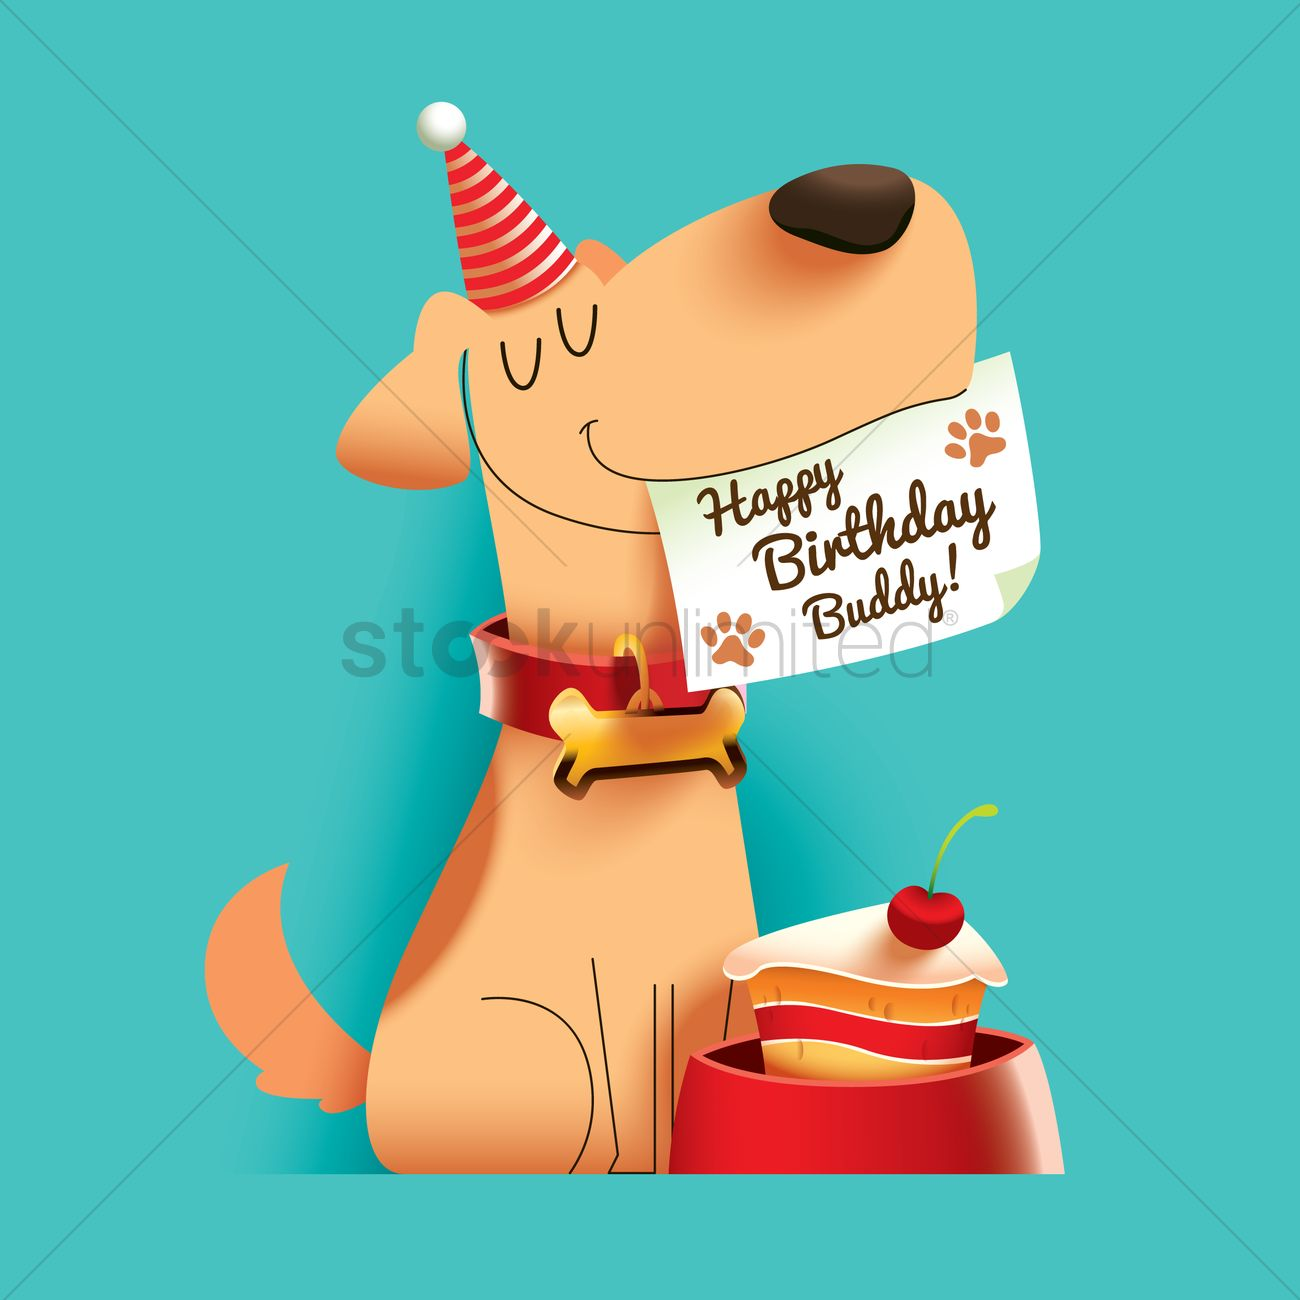 Buddy the dog clipart image black and white download Dog with happy birthday buddy note Vector Image - 1797678 ... image black and white download